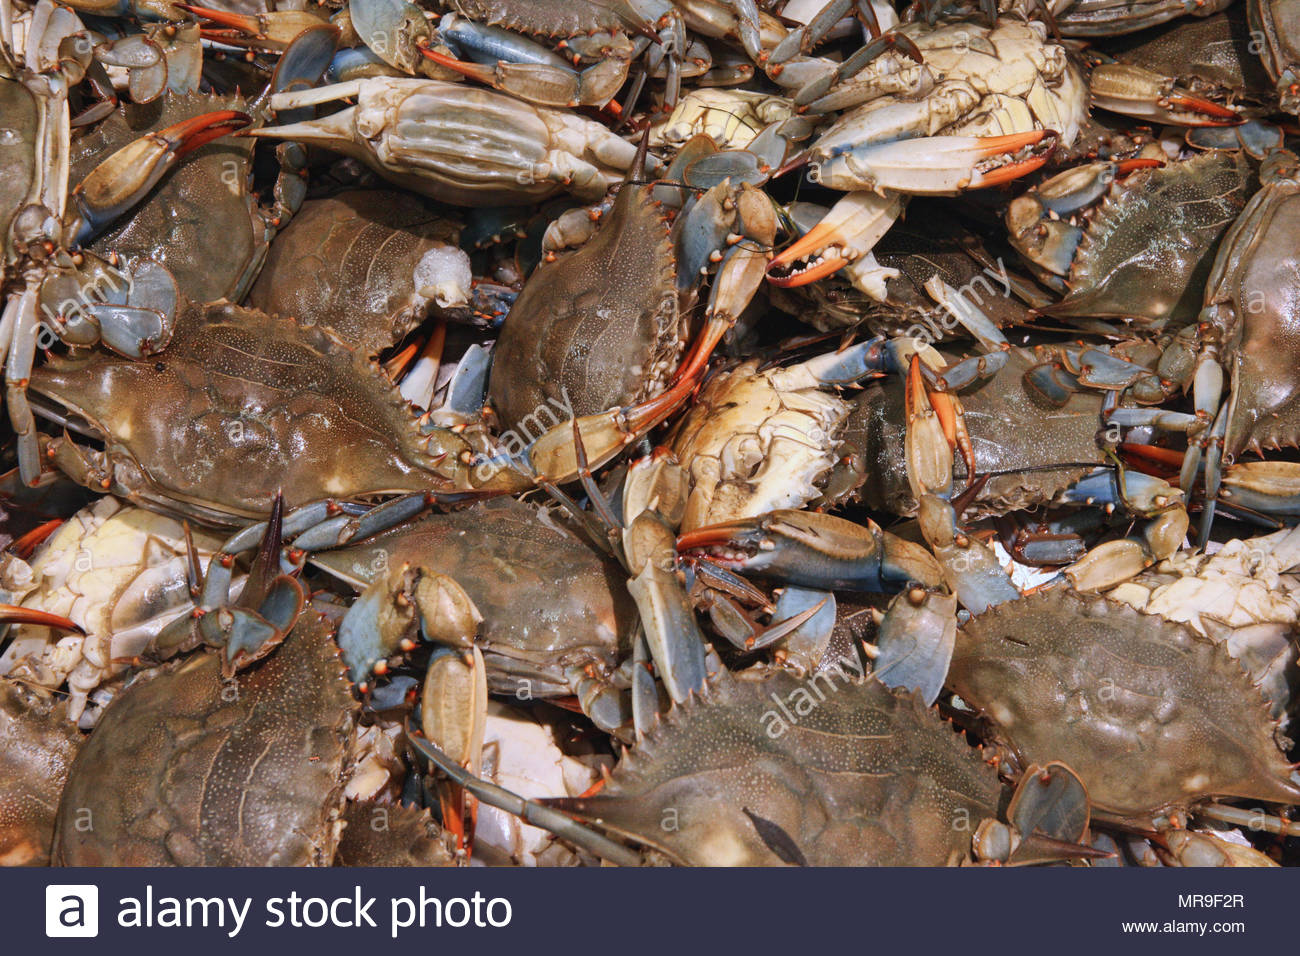 Live blue crabs (Callinectes sapidus) for sale at a market in Toronto, Ontario, Canada. - Stock Image